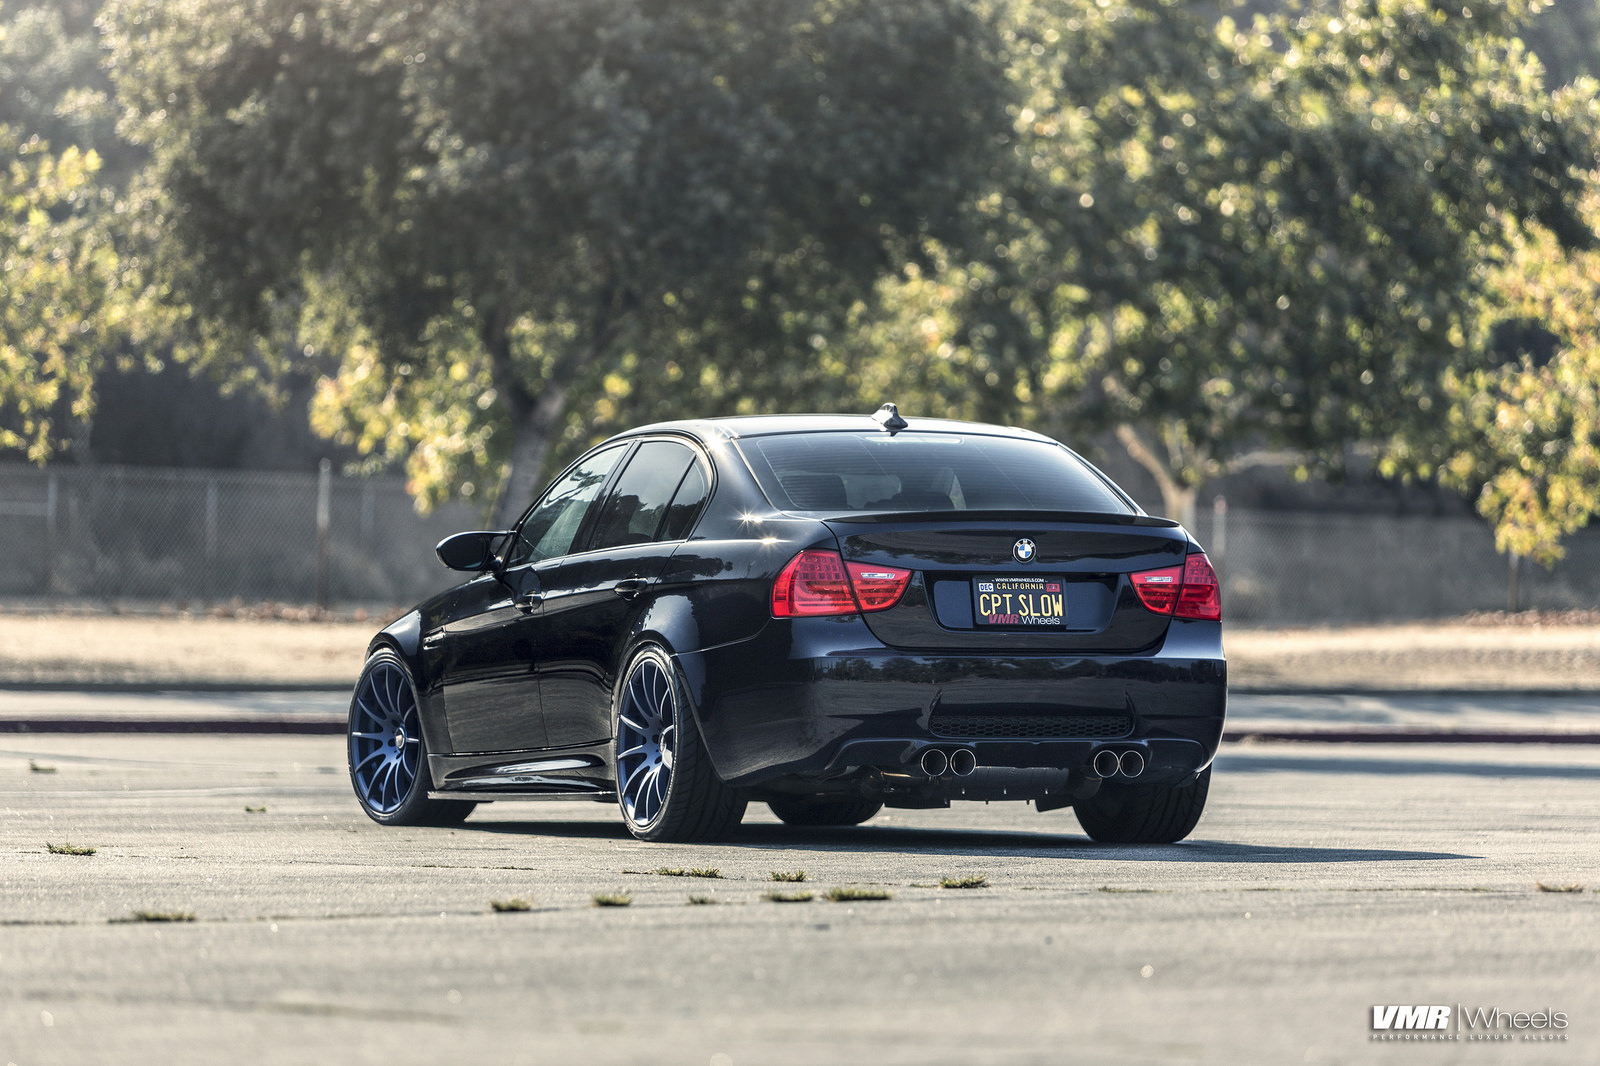 e90-bmw-m3-onvmr-wheels-7